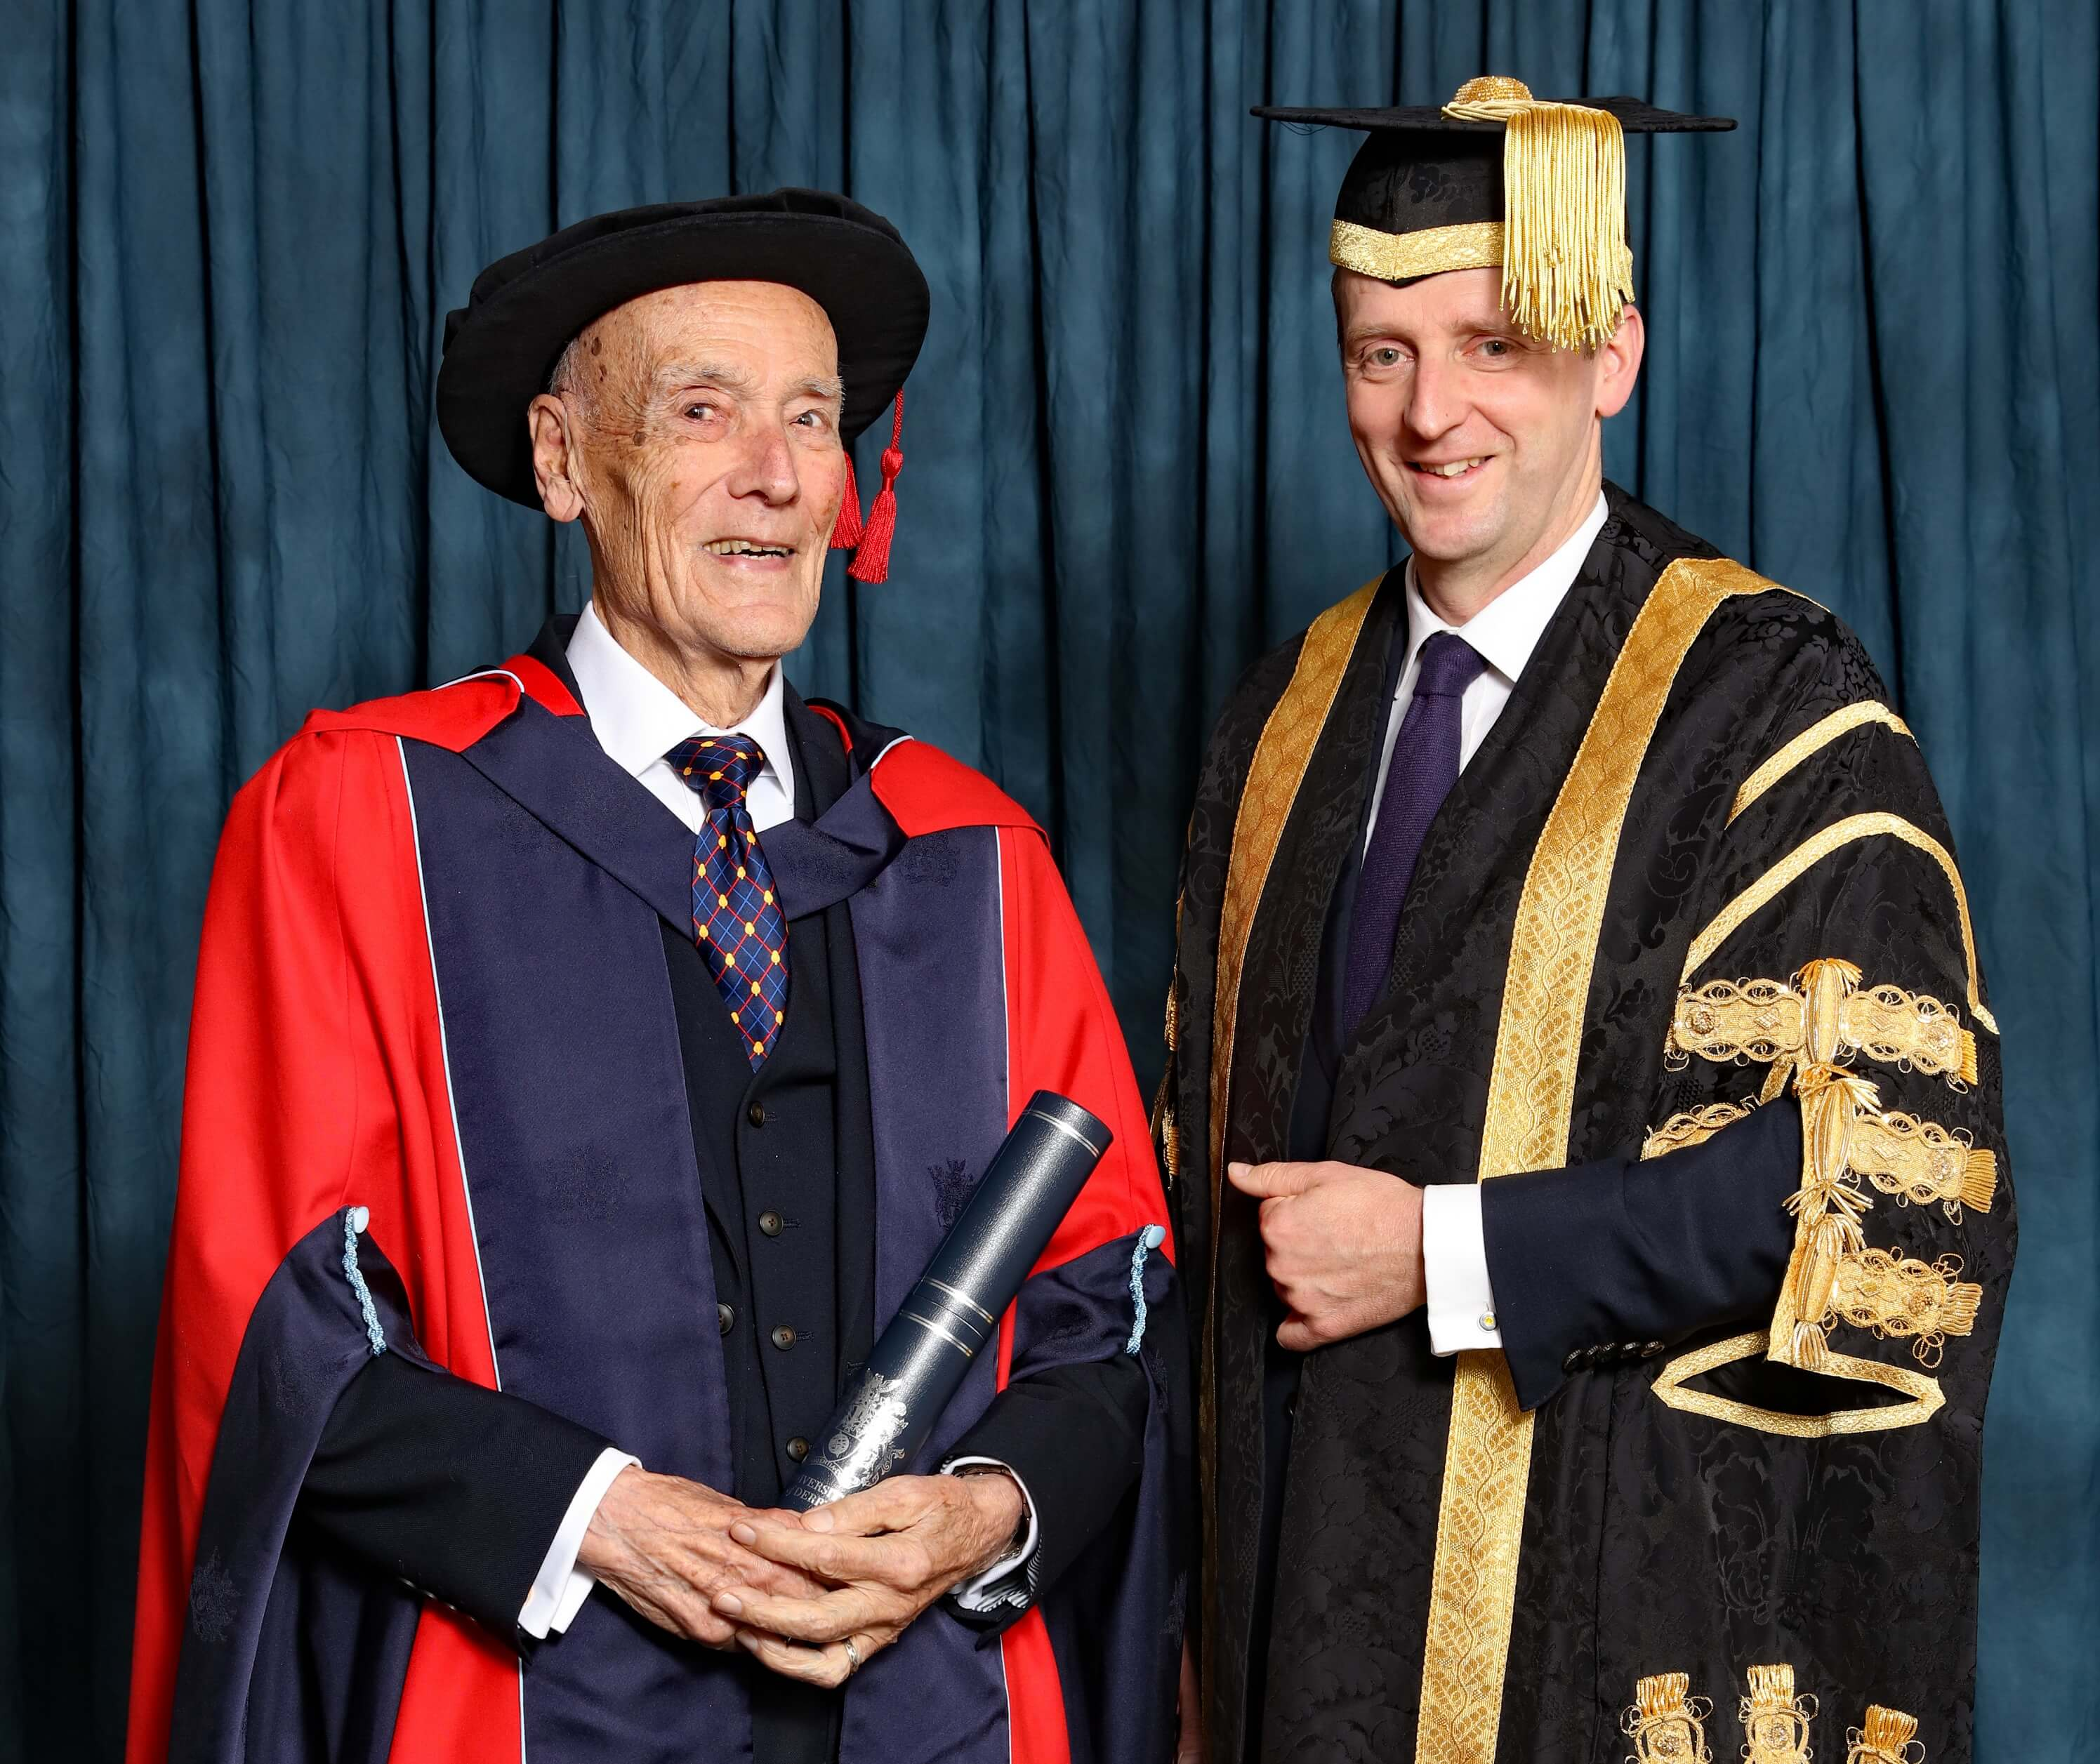 Colin Treadaway-Hoare receiving an Honorary Degree from the University